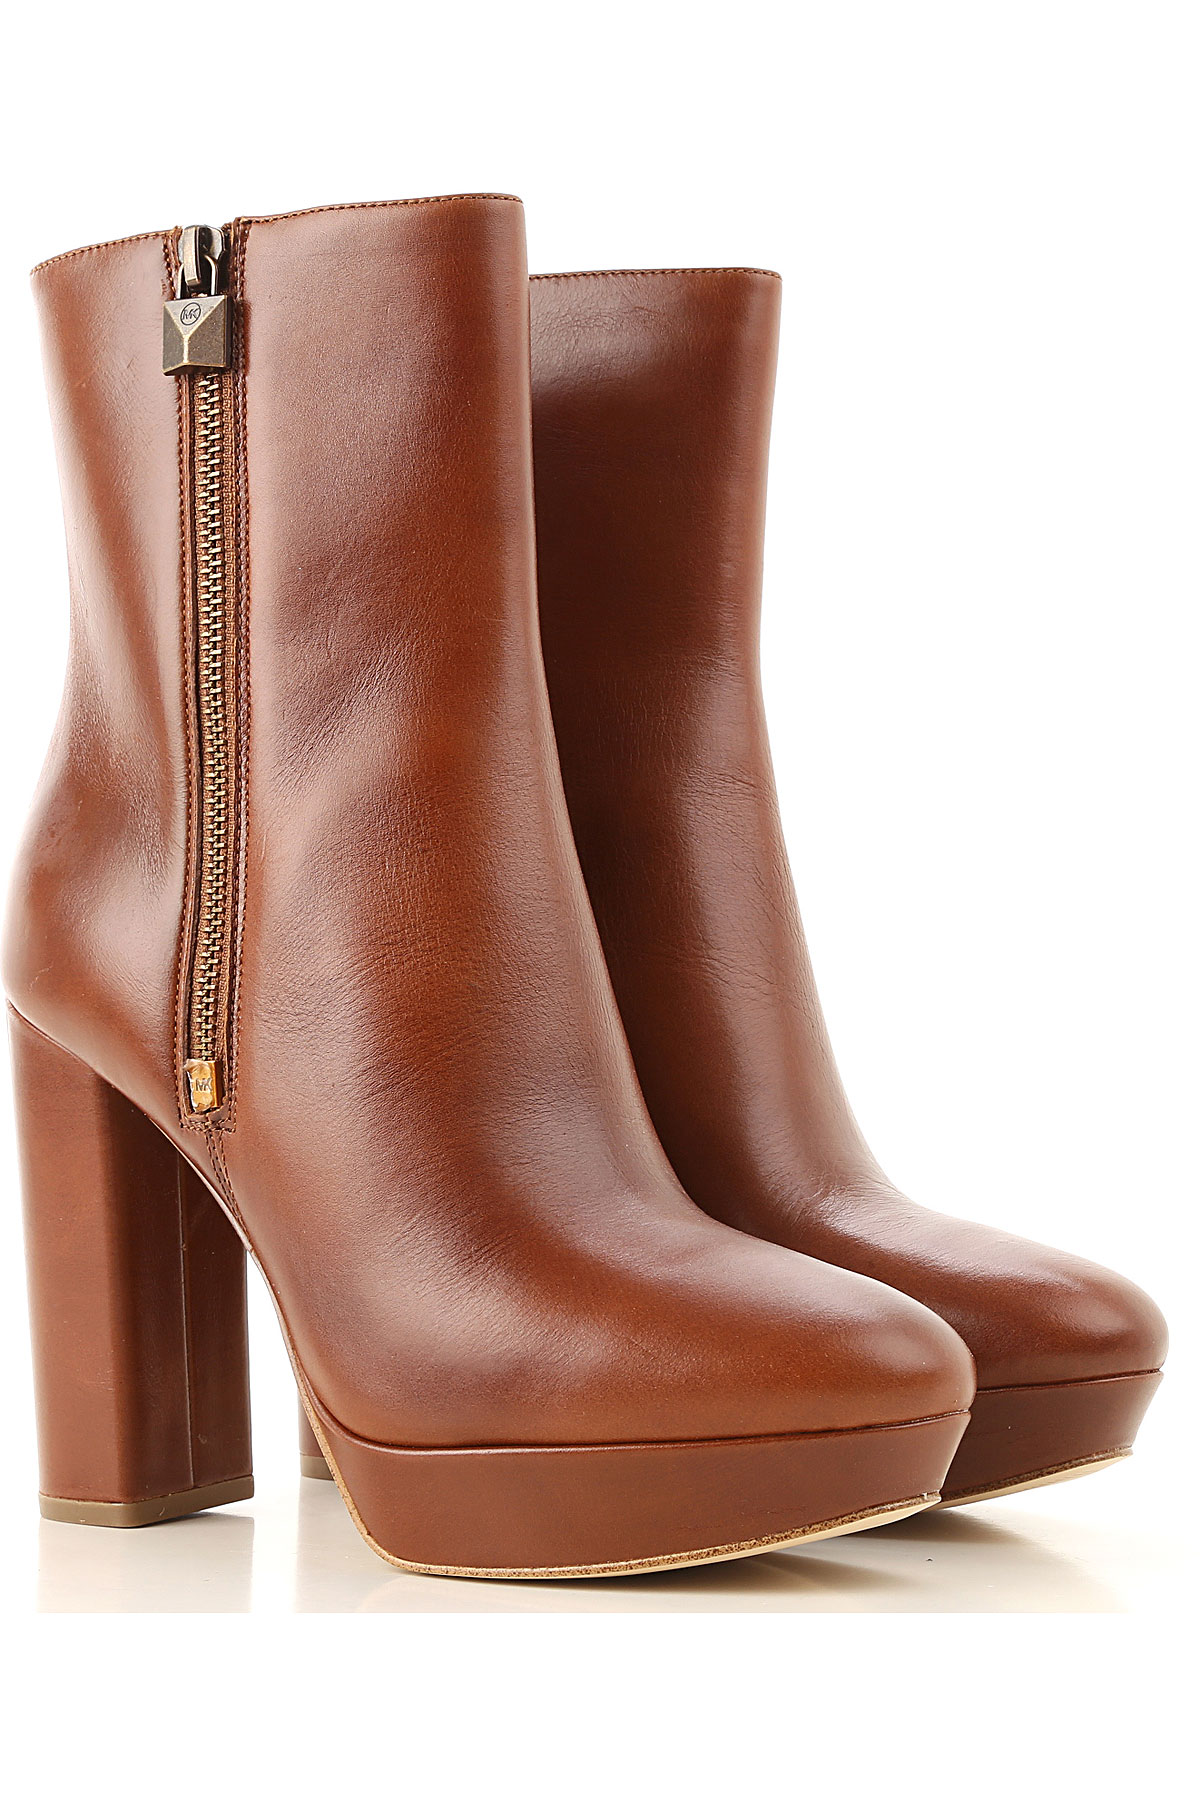 Michael Kors Boots for Women, Booties On Sale, Caramel, Leather, 2019, 10 7 8 9